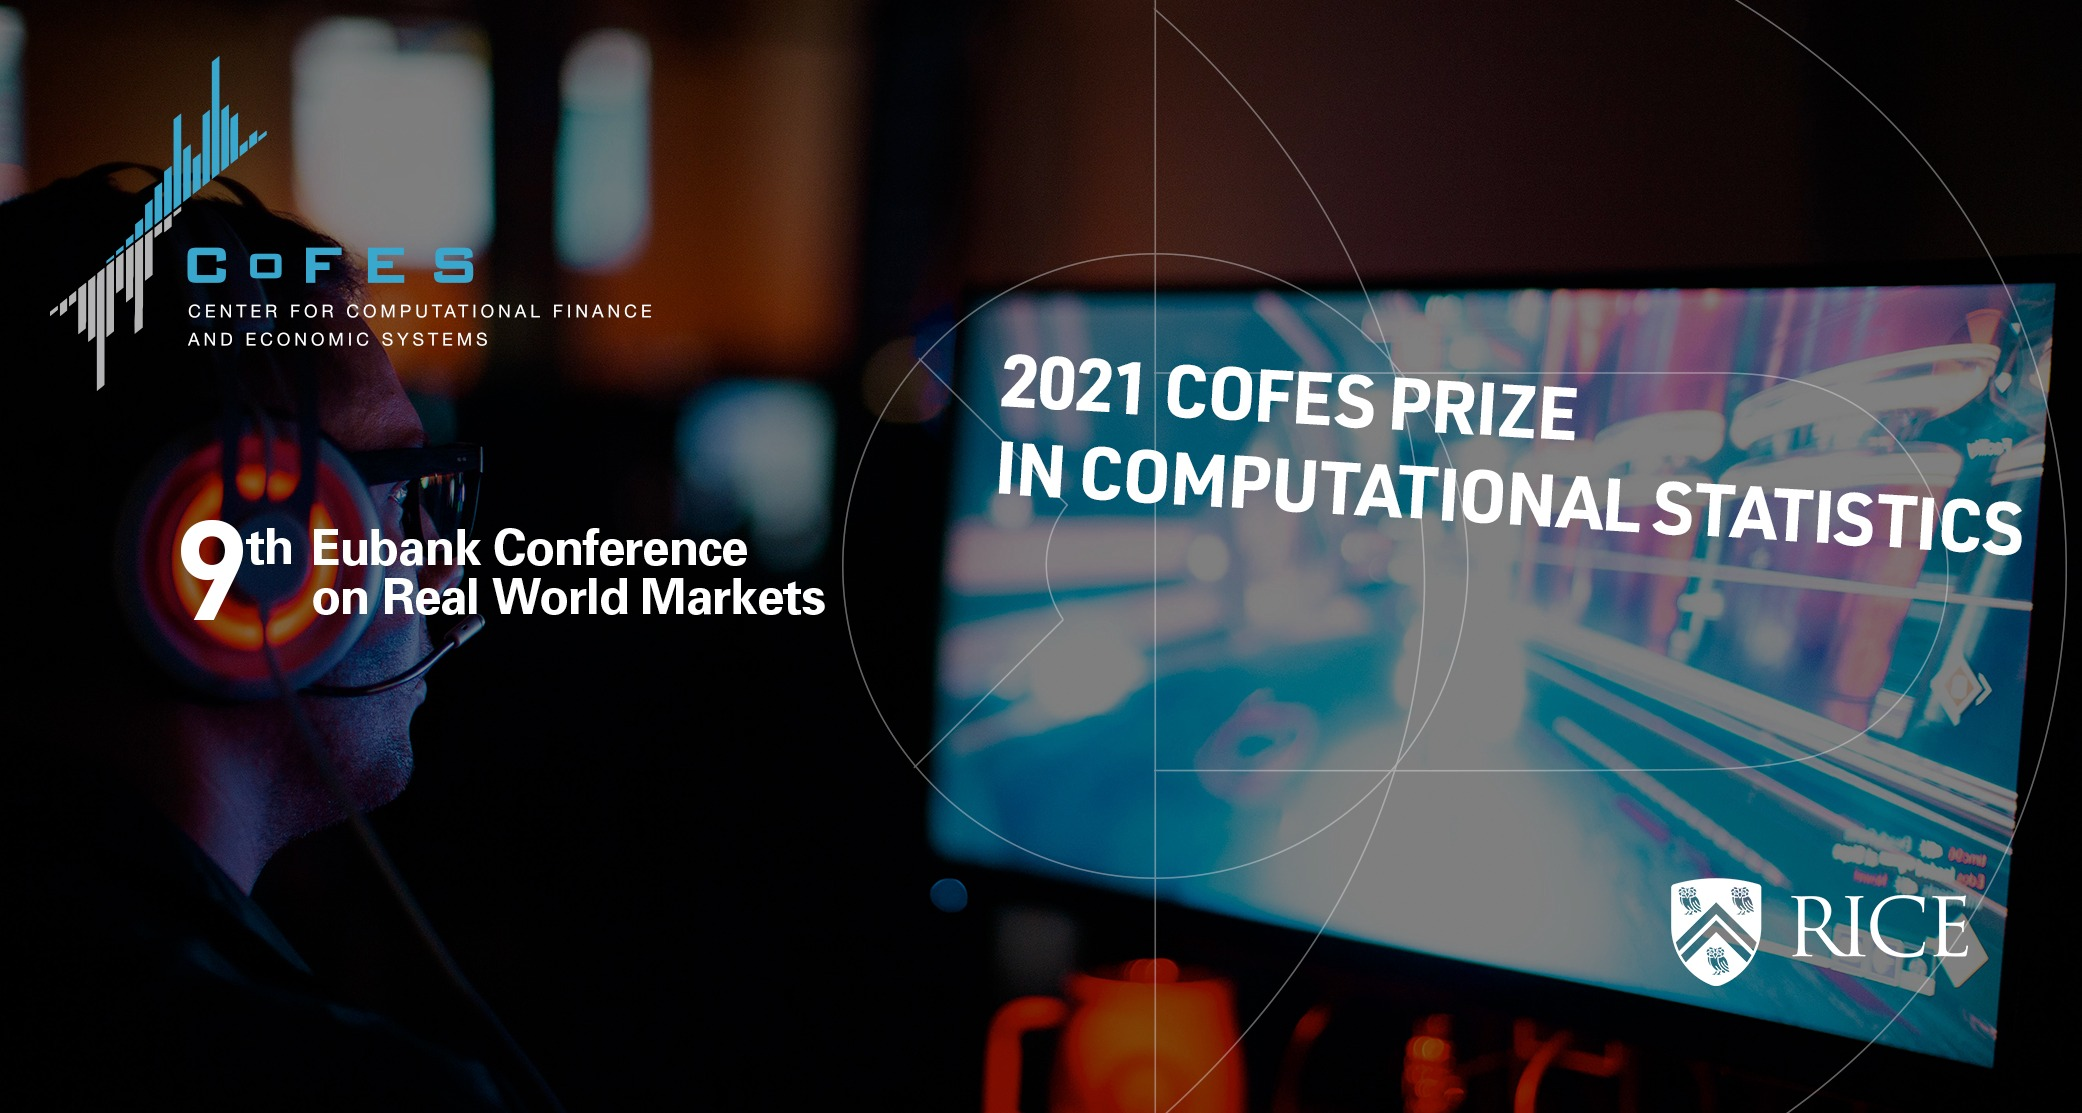 CoFES Prizes in Computational Statistics Announced